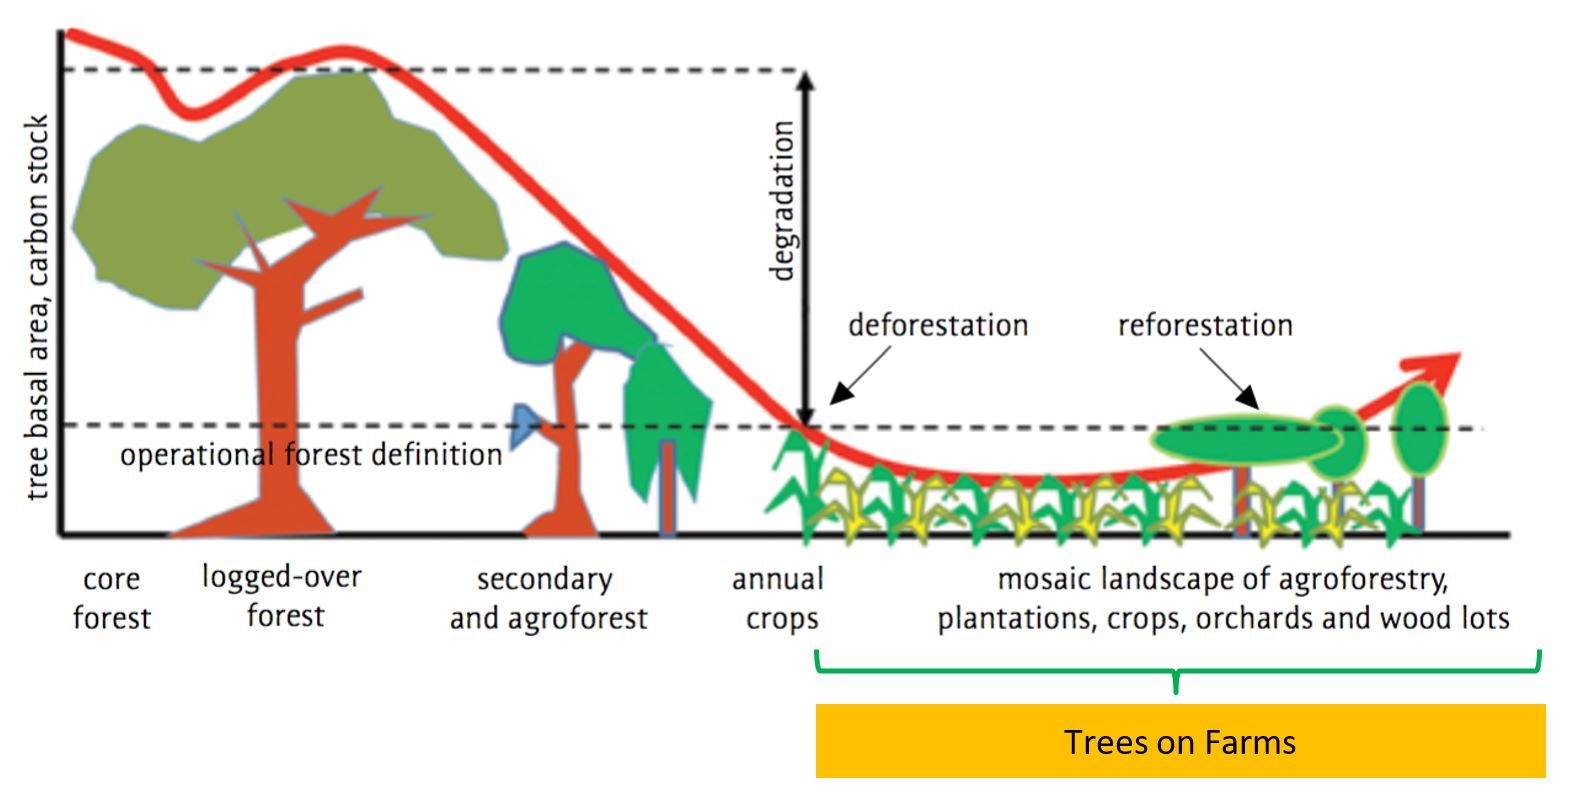 hight resolution of trees on farms play a critical role in providing some of the services forests provide because they maintain and restore high levels of landscape